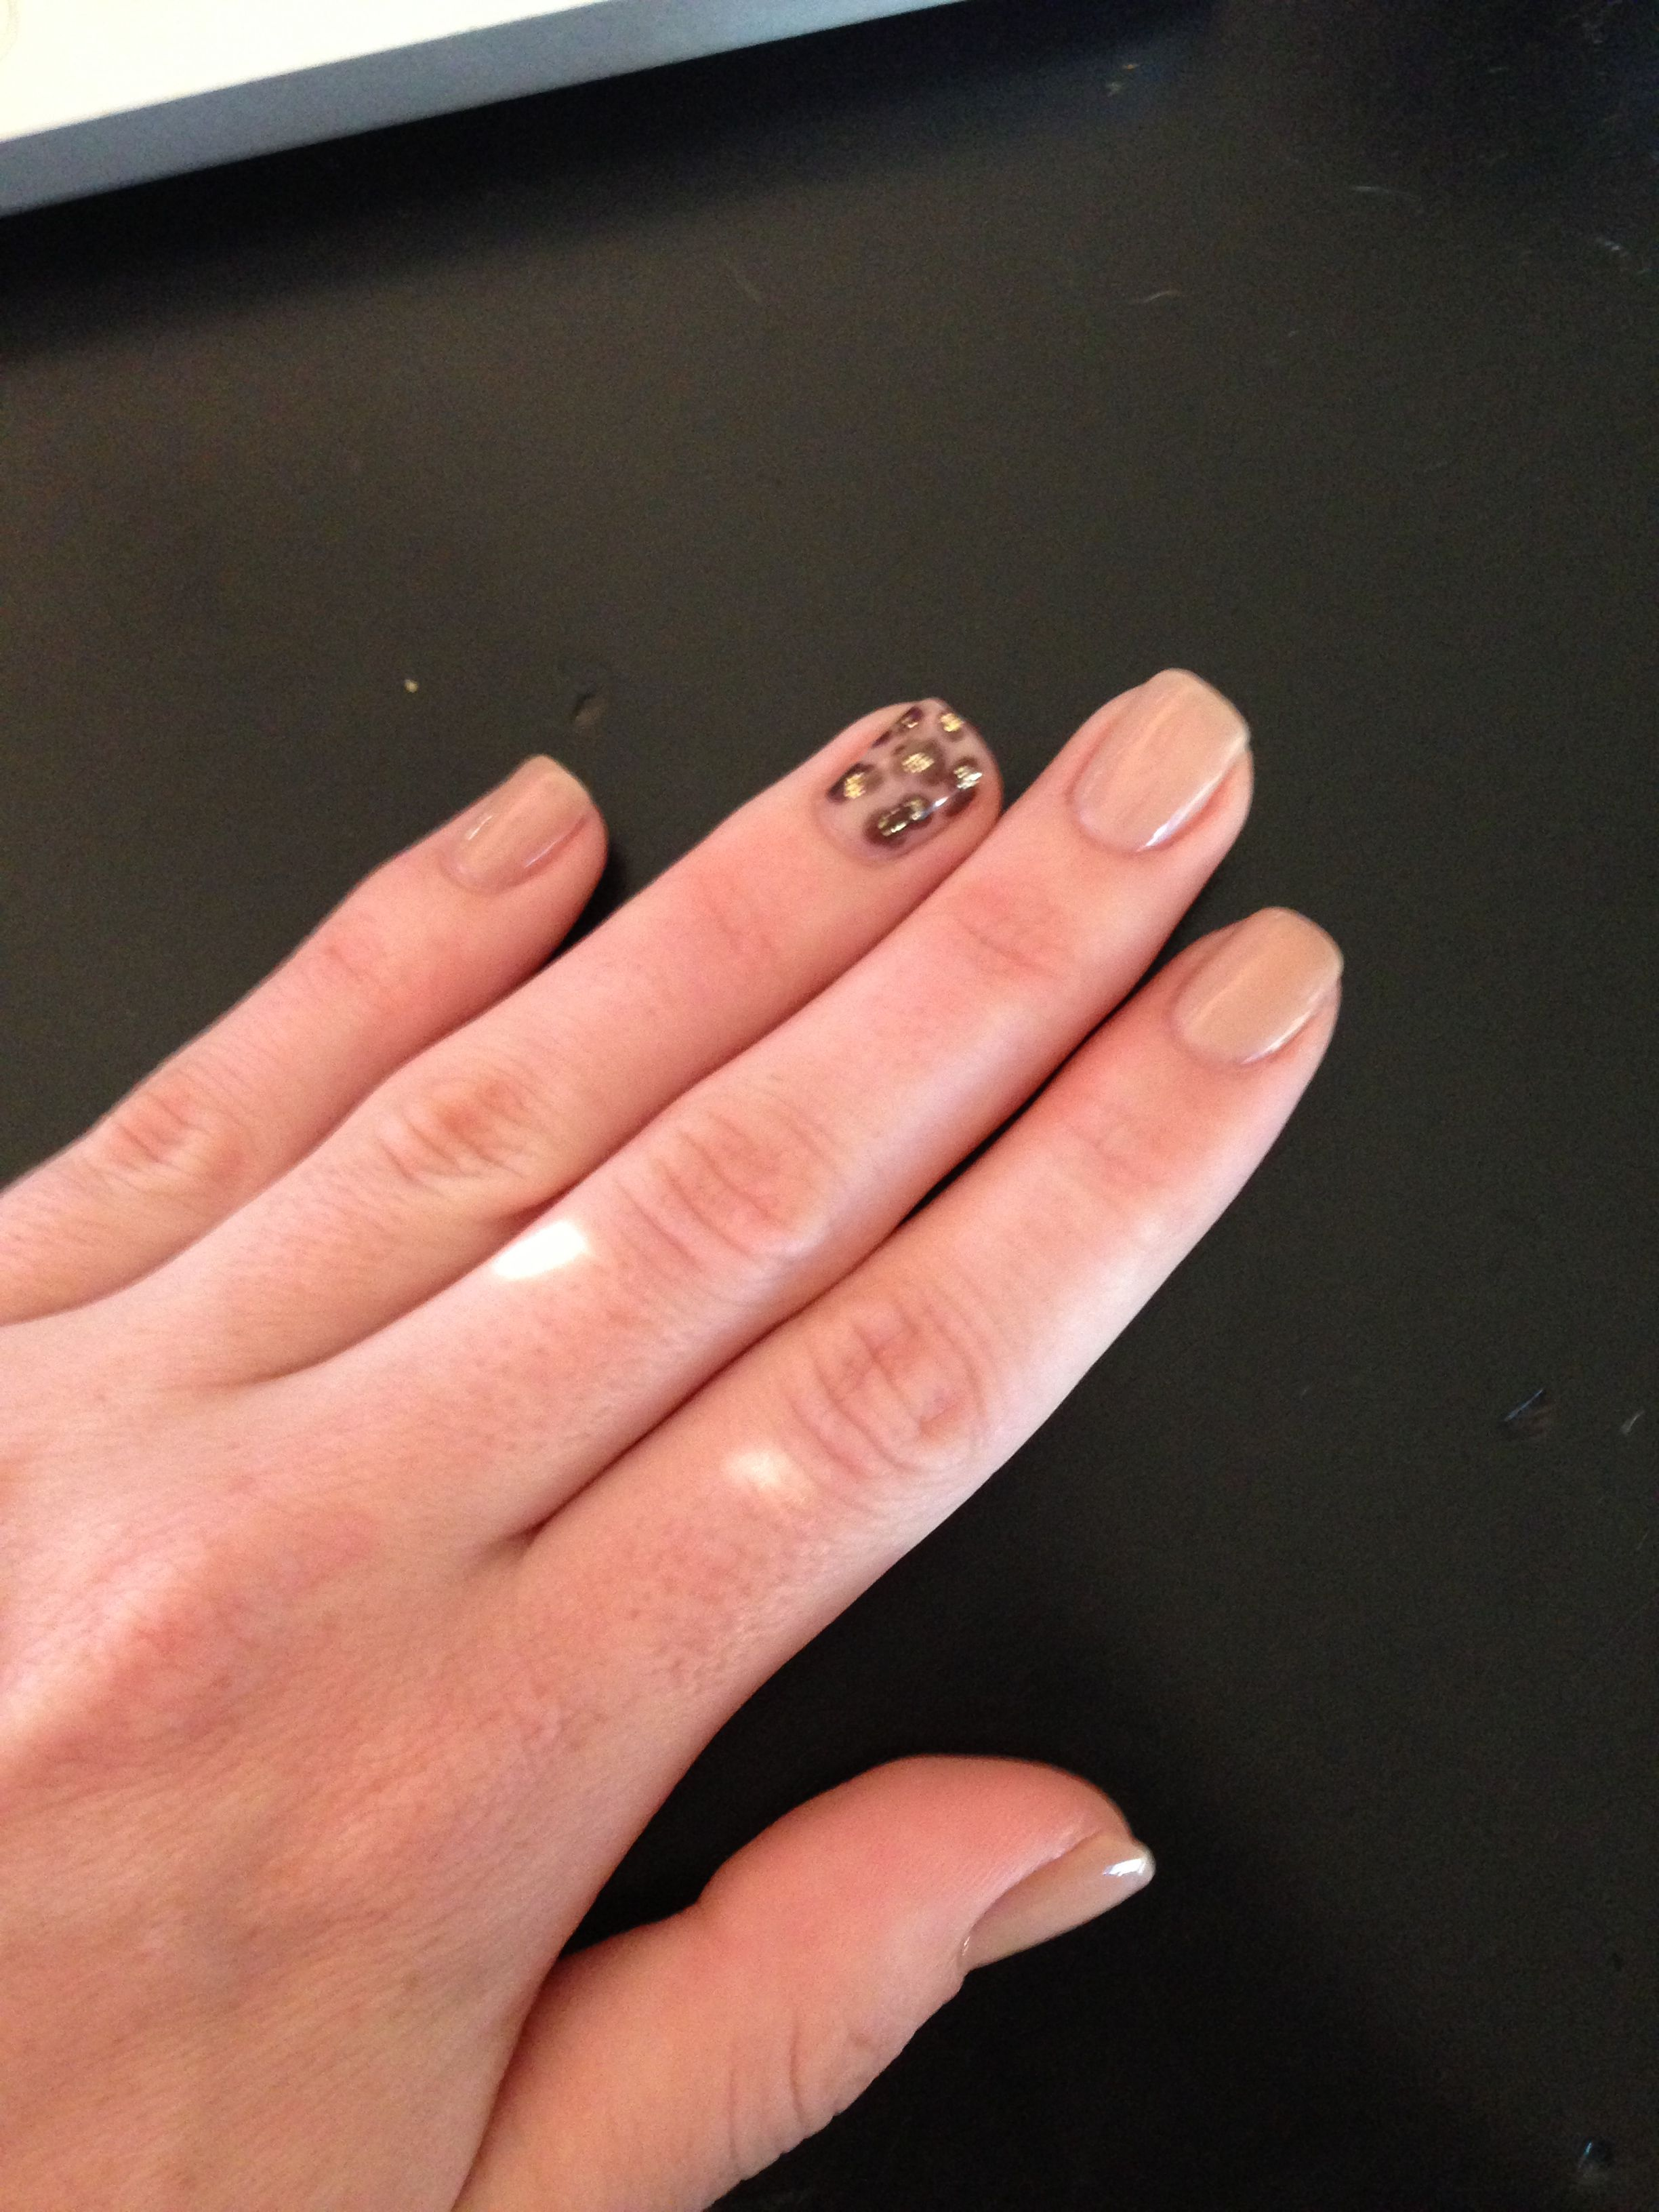 No Chip Nails With Leopard Print Design My Style Pinterest